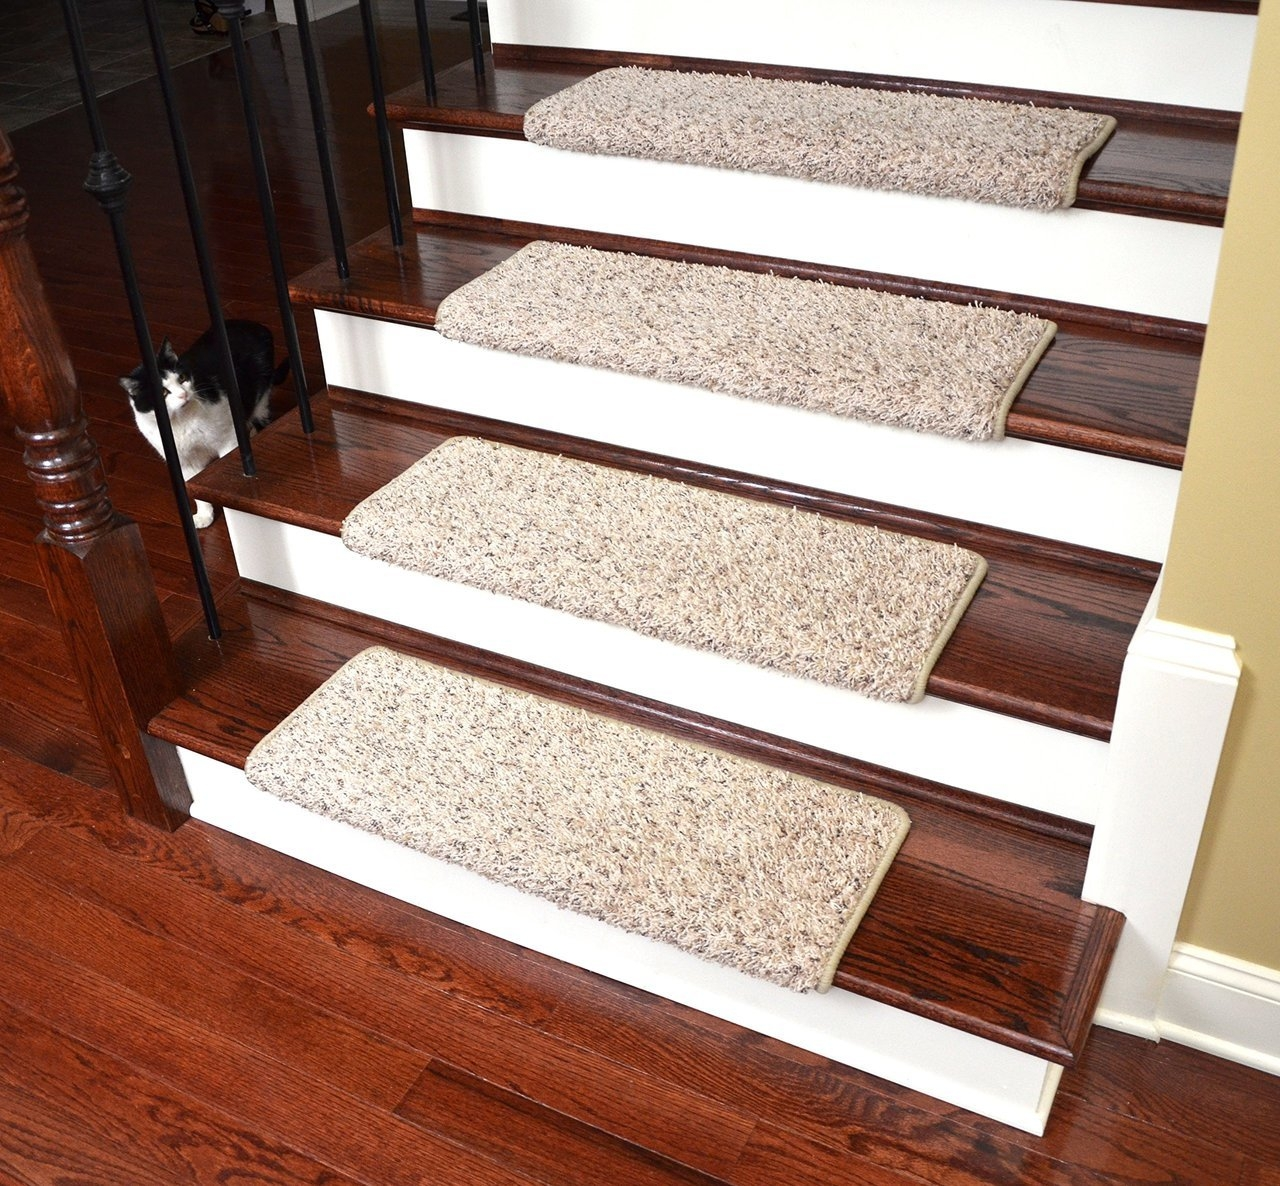 Popular Carpet Stair Treads Carpet Tile Ideas For Install Within Stair Tread Carpet Tiles (Image 9 of 15)